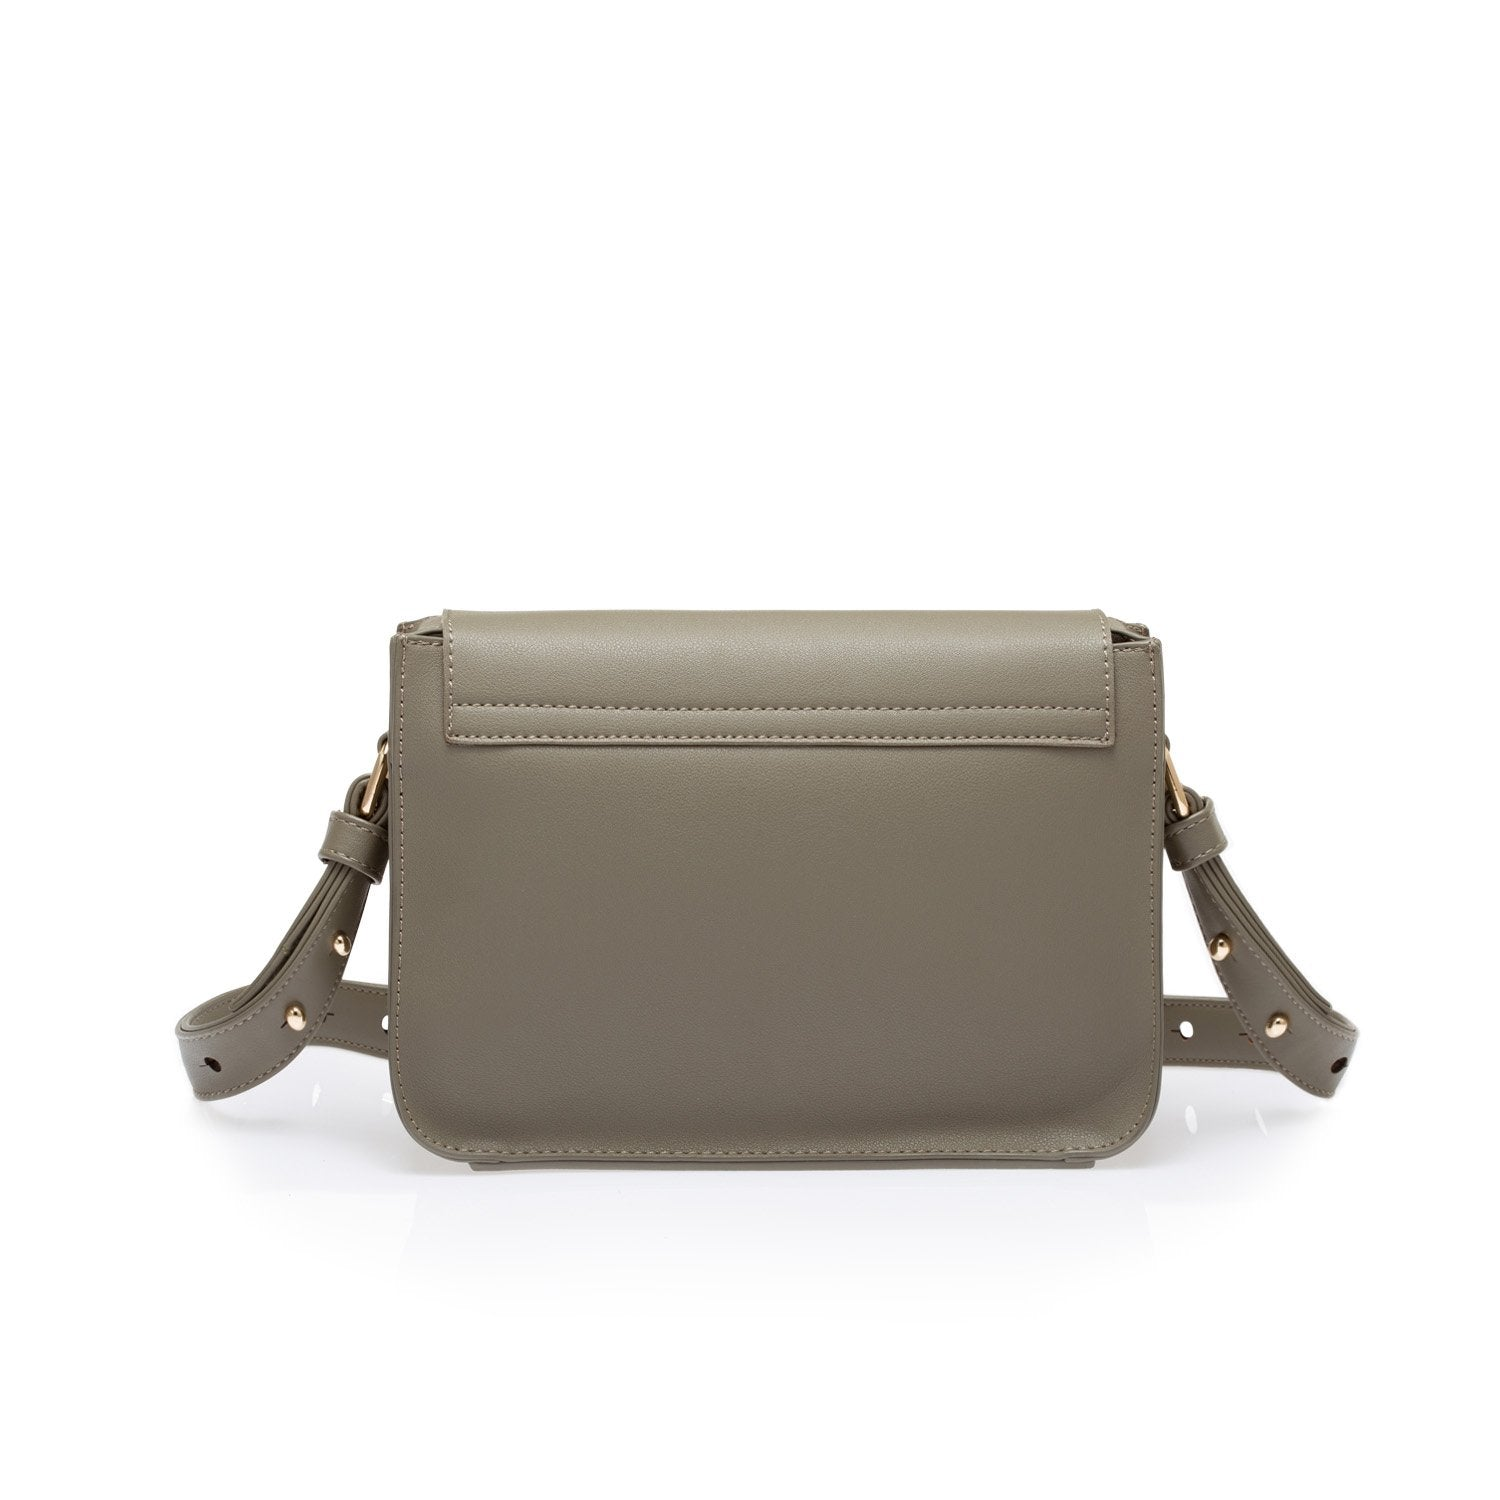 ESATCH S - OLIVE